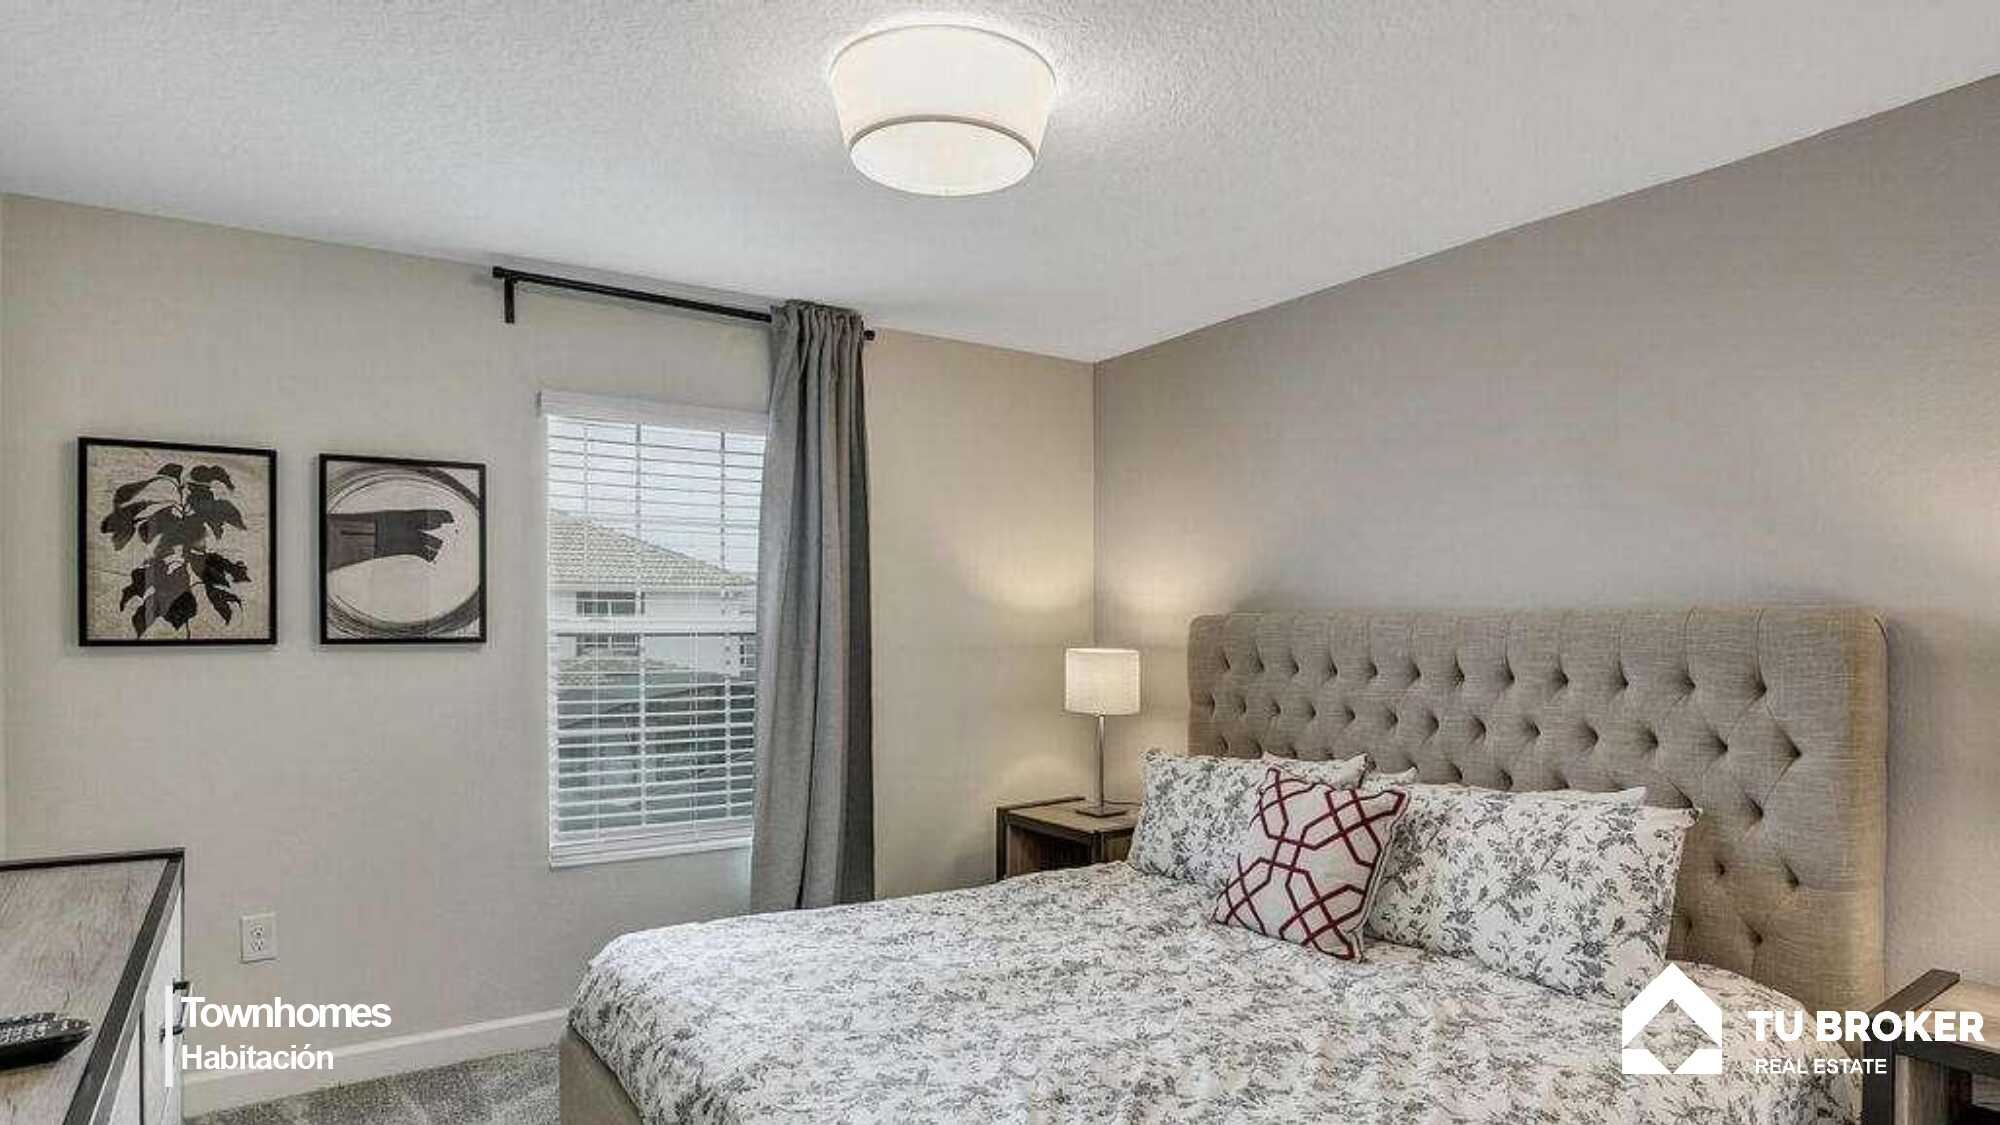 pag-orla-sl-townhomes_compressed-1_page-0021_optimized